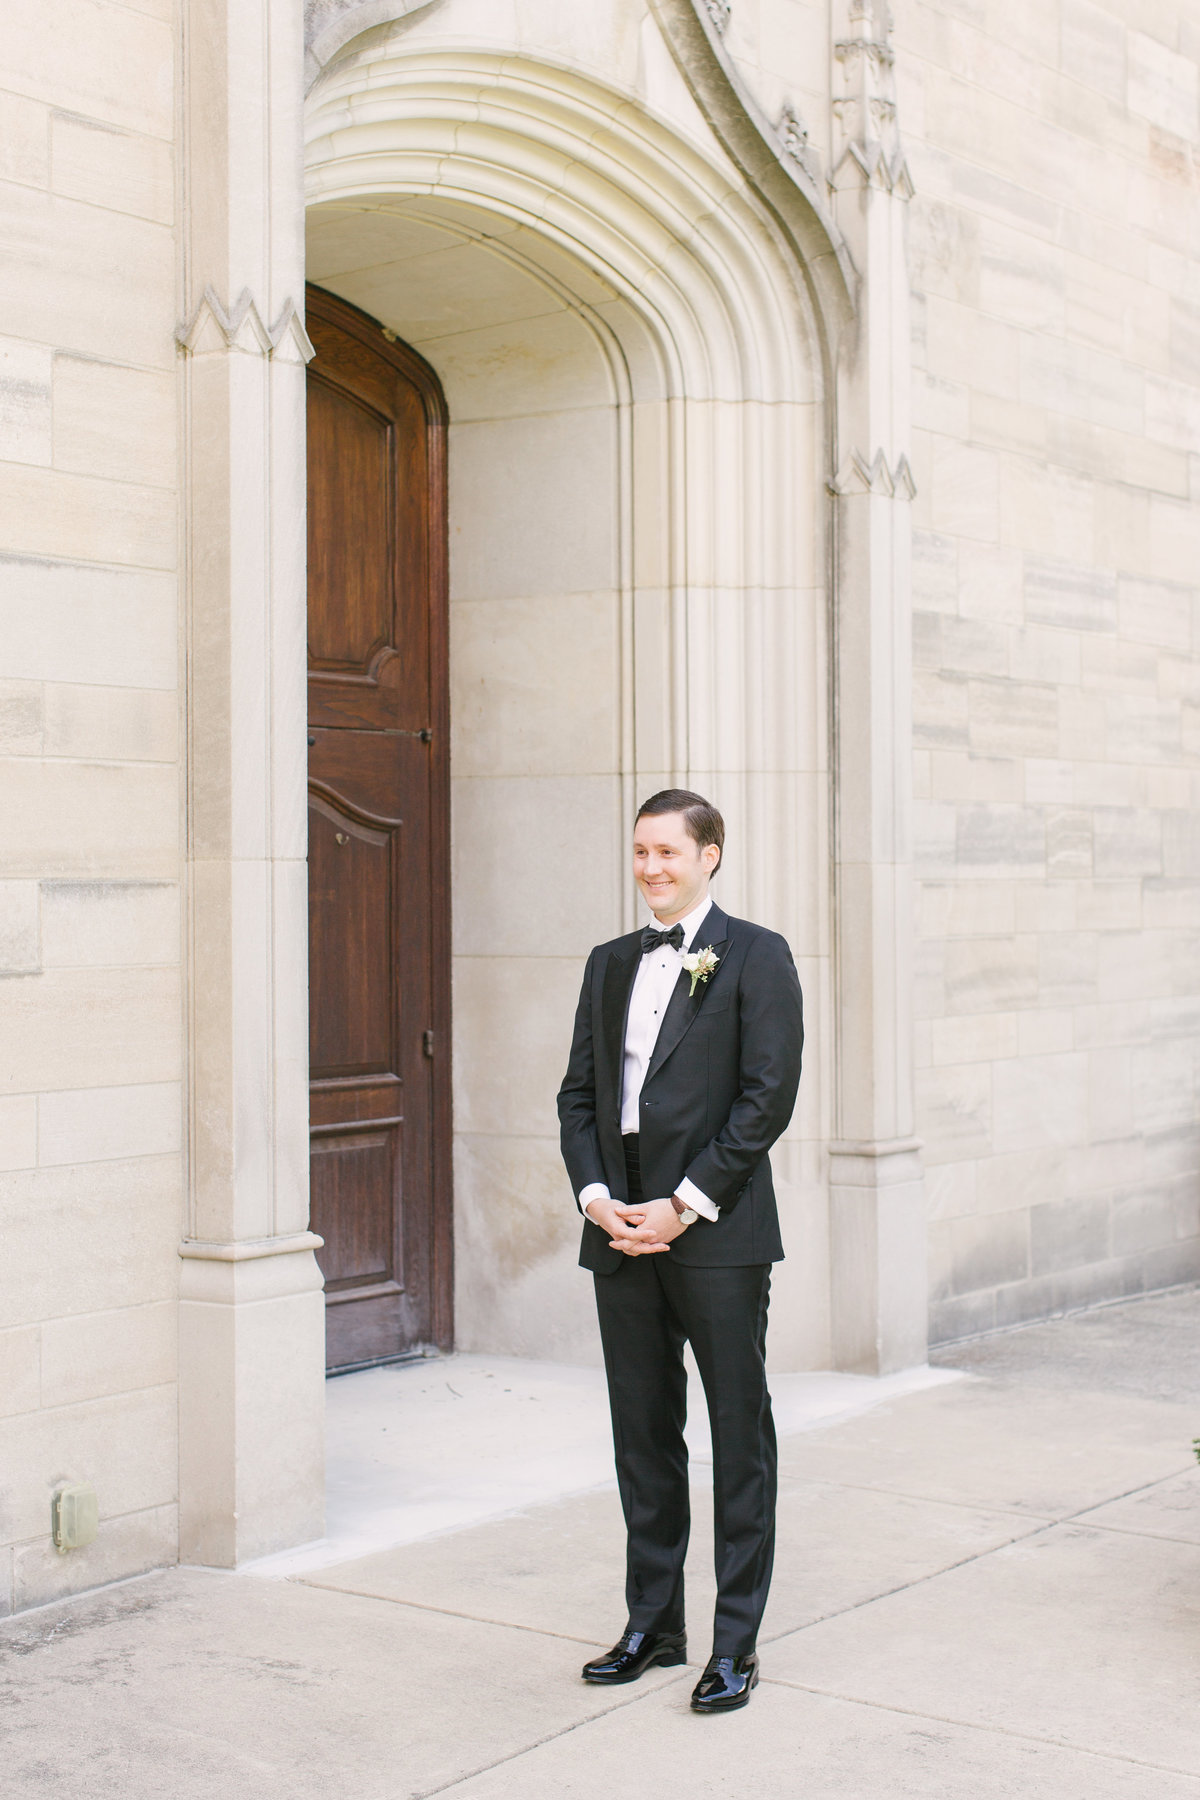 Scottish Rite Cathedral Wedding First Look Photo